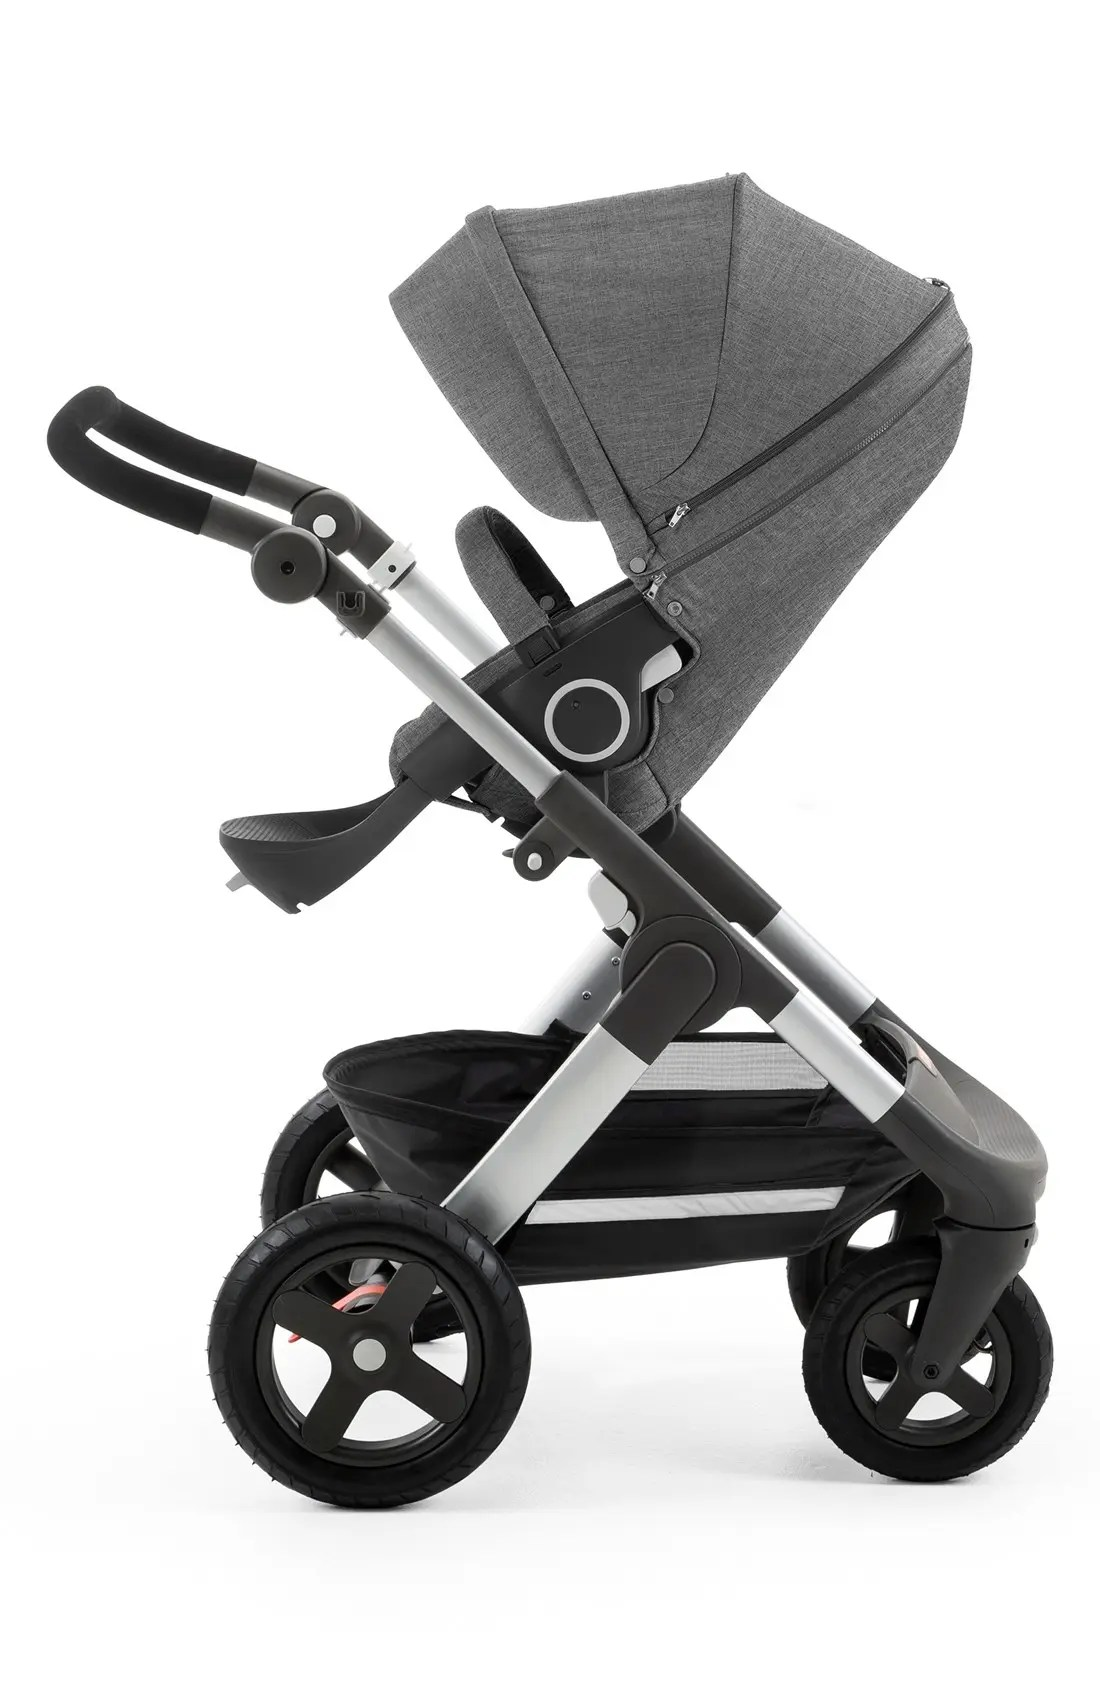 Main Image - Stokke 'Trailz™' All Terrain Stroller